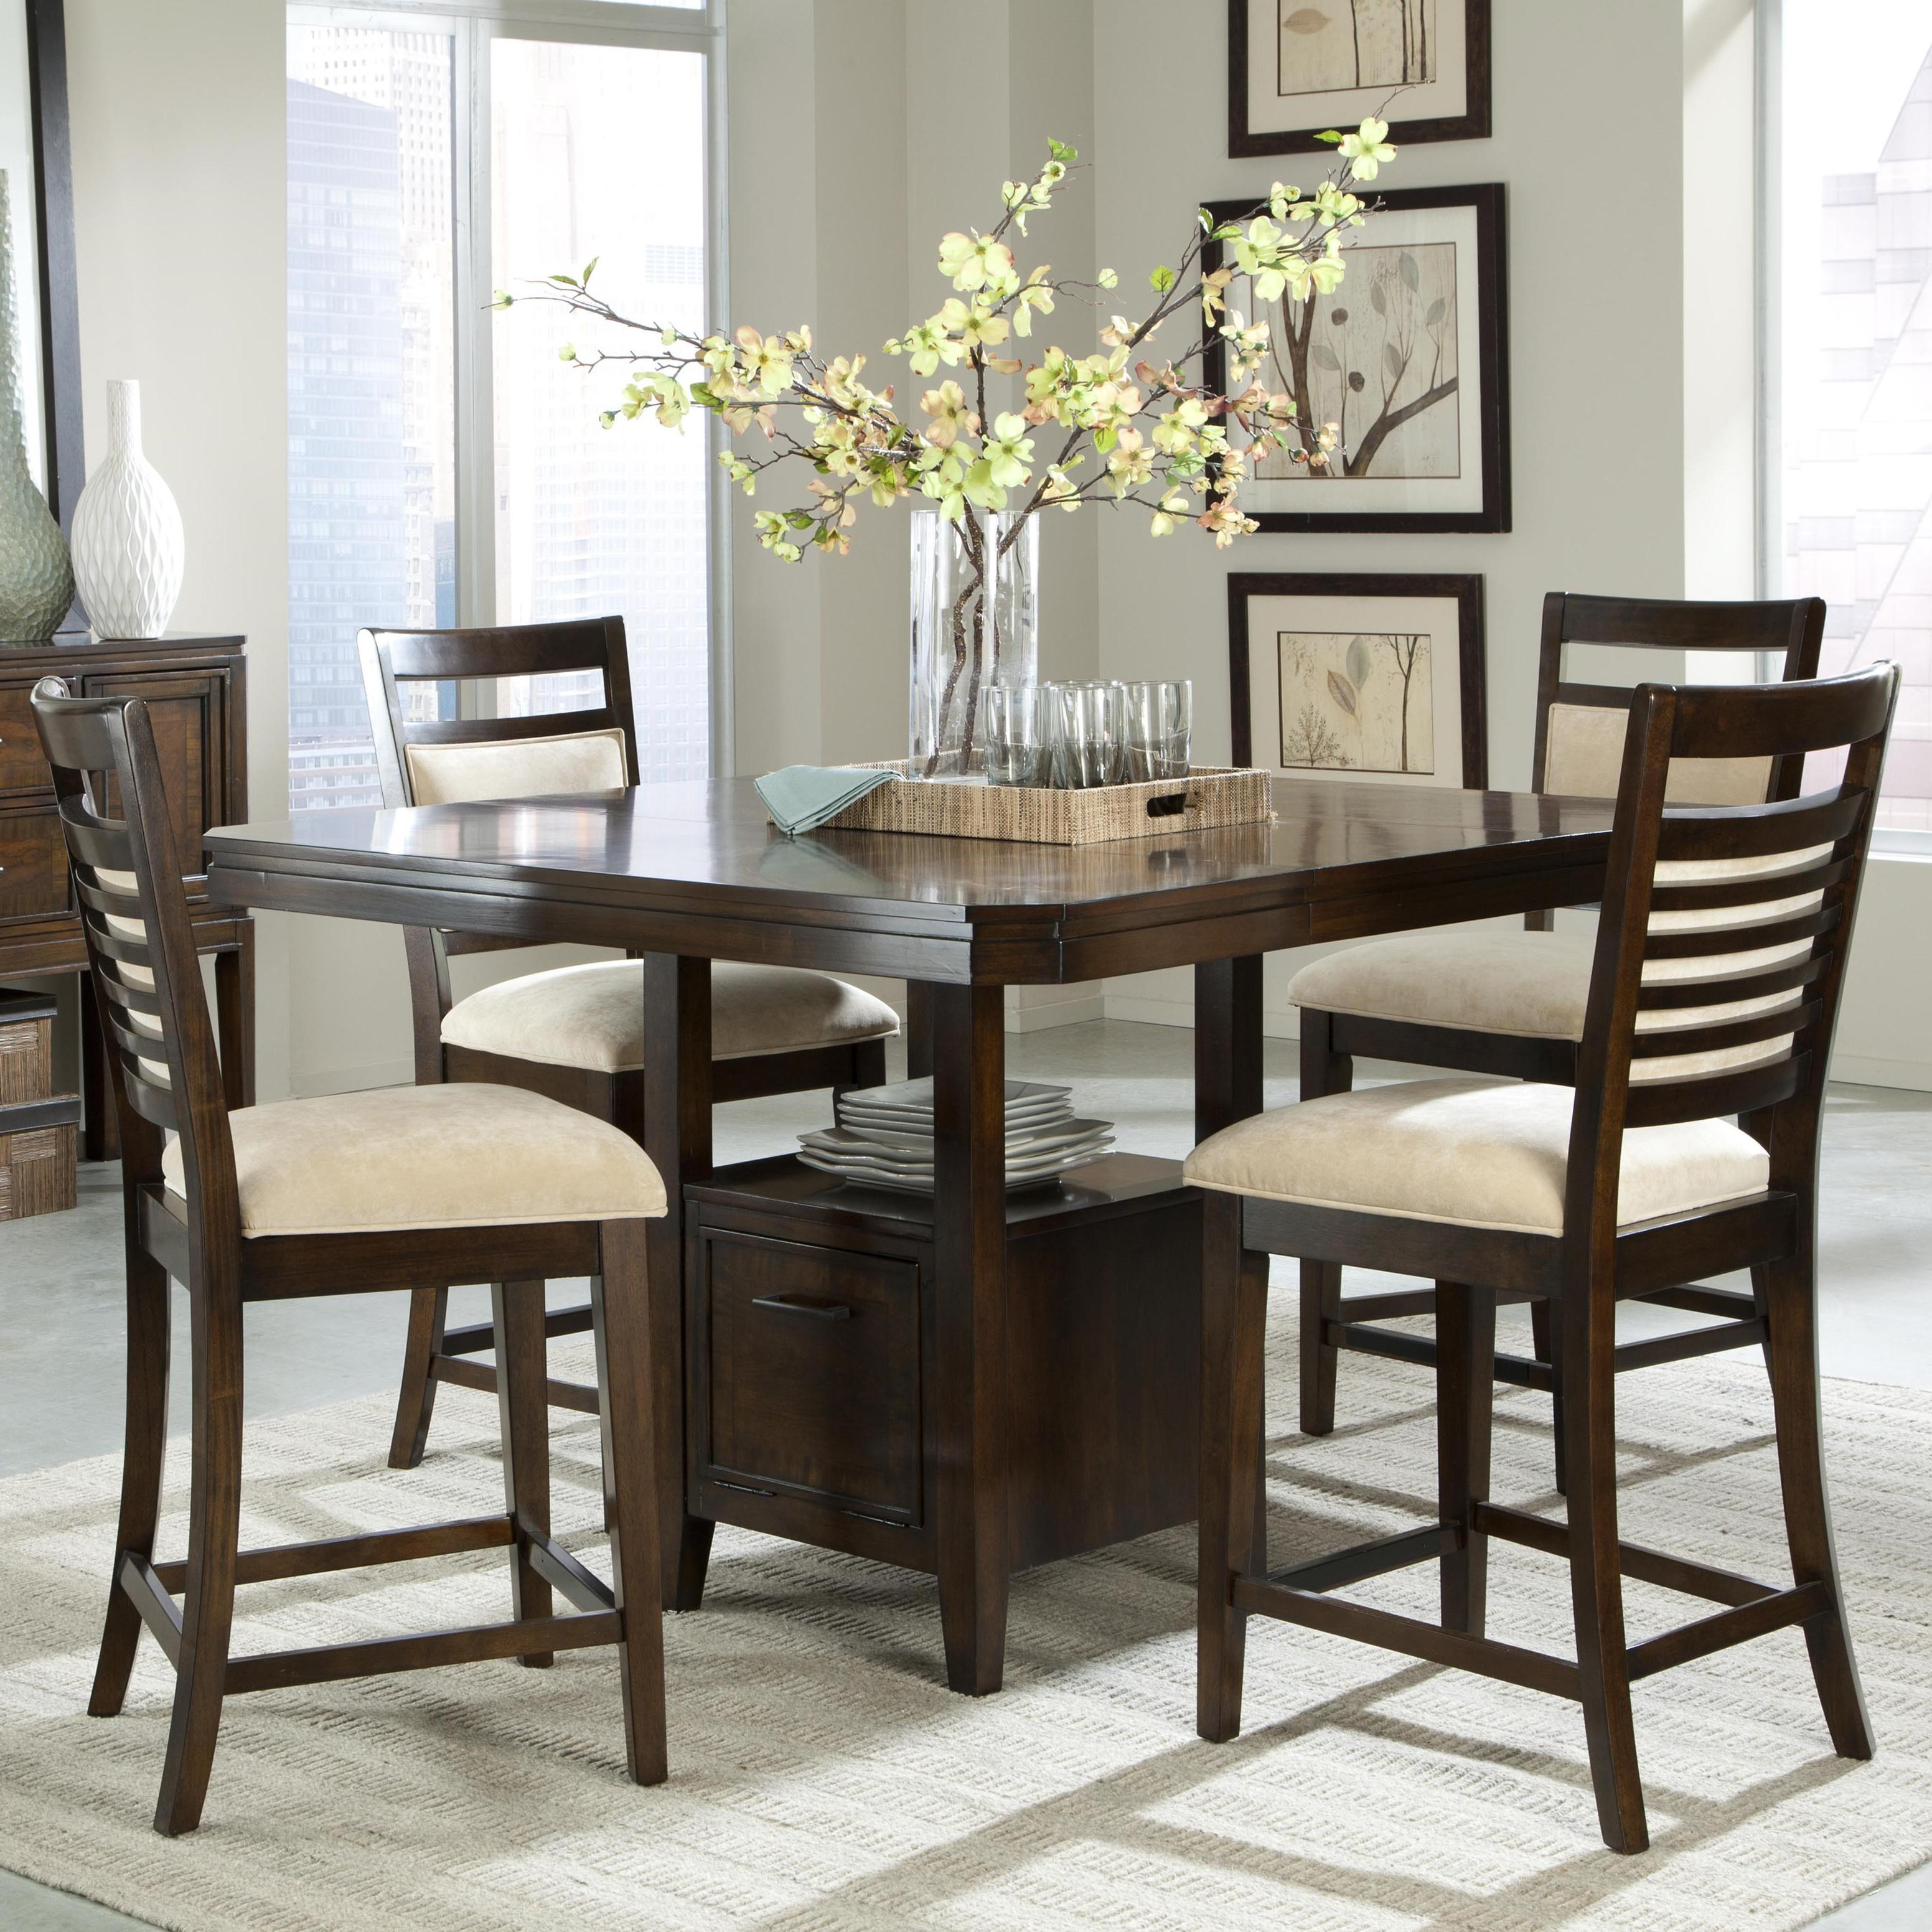 Standard Furniture Avion 5 Piece Counter Height Table Set And Upholstered Counter  Height Chairs With Ladder